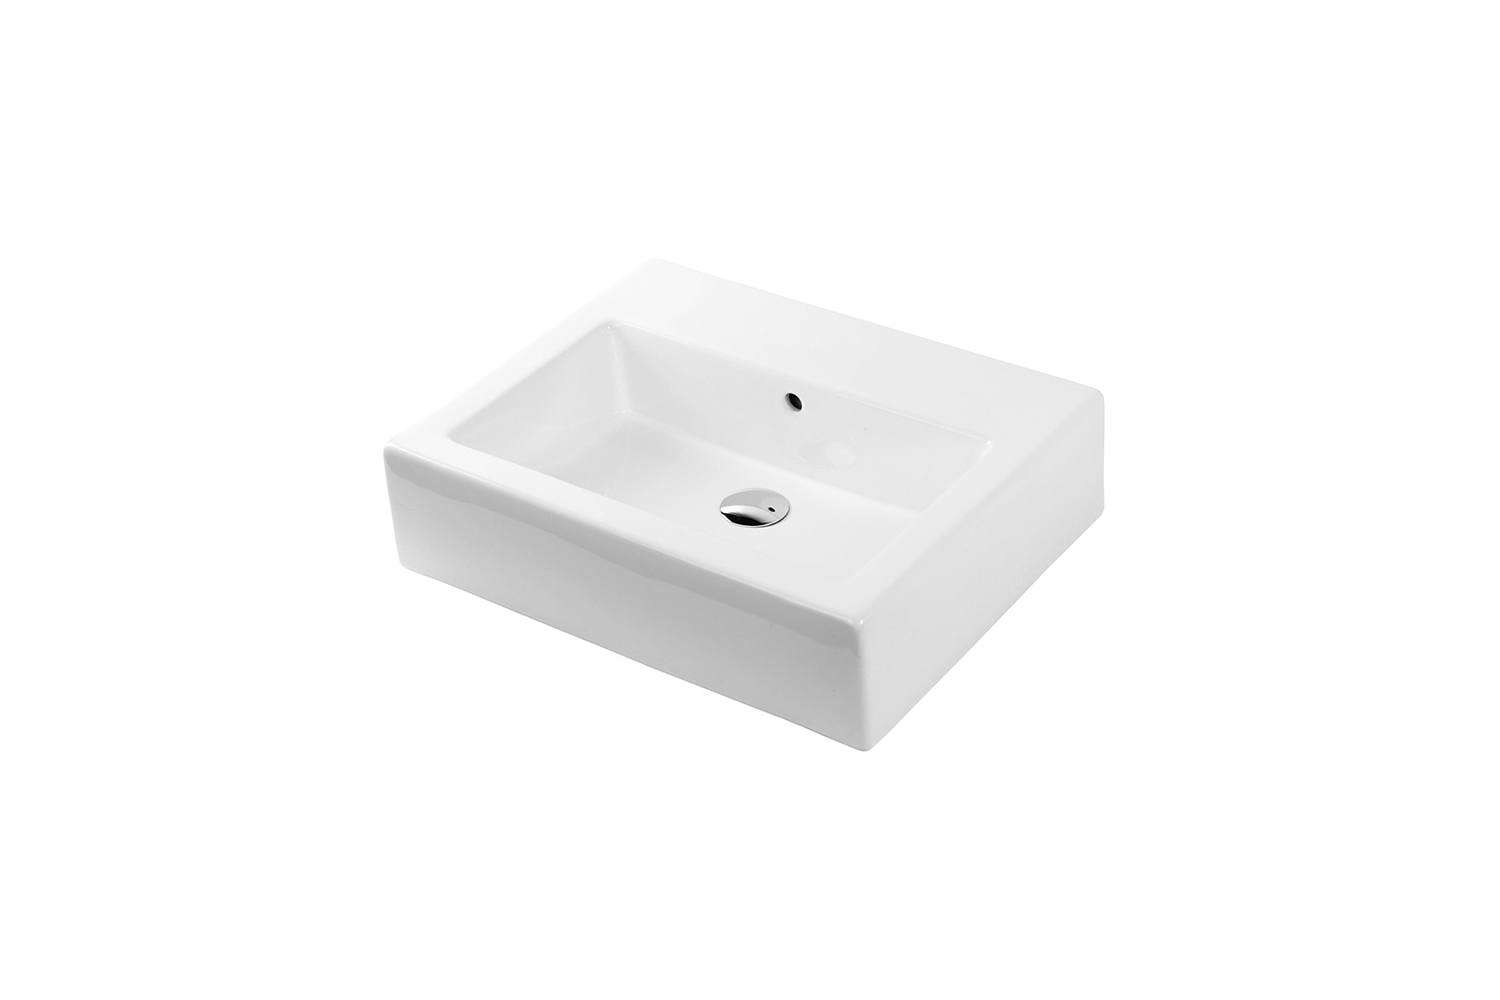 the lacava aquagrande wall mount sink #5464 is available at lacava directly; co 14